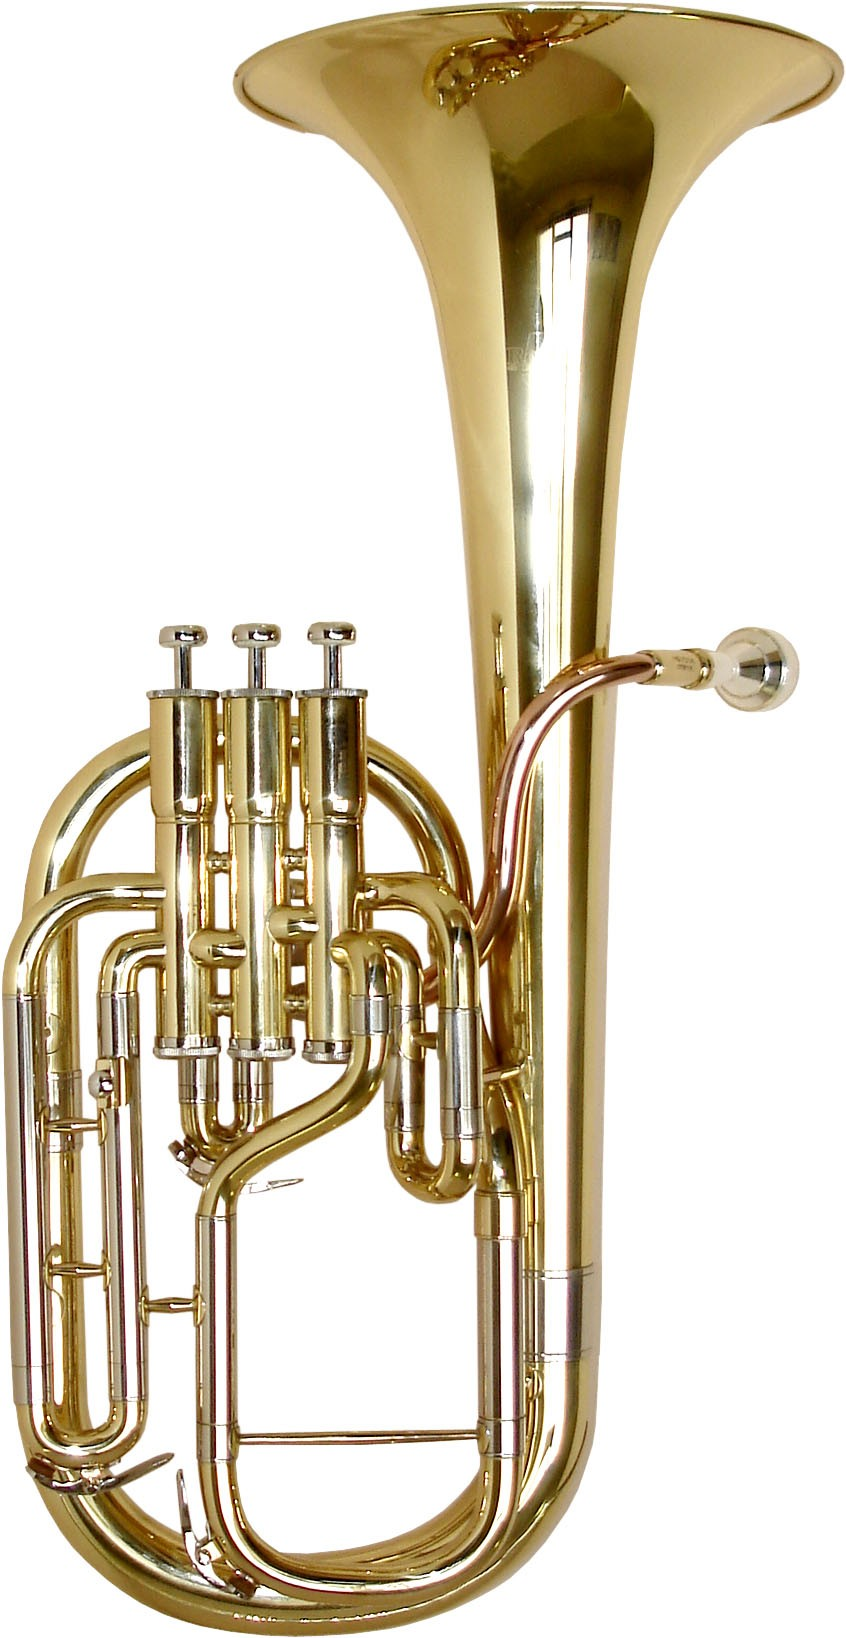 Rosetti Series 5 Tenor Horn Outfit - Lacquer